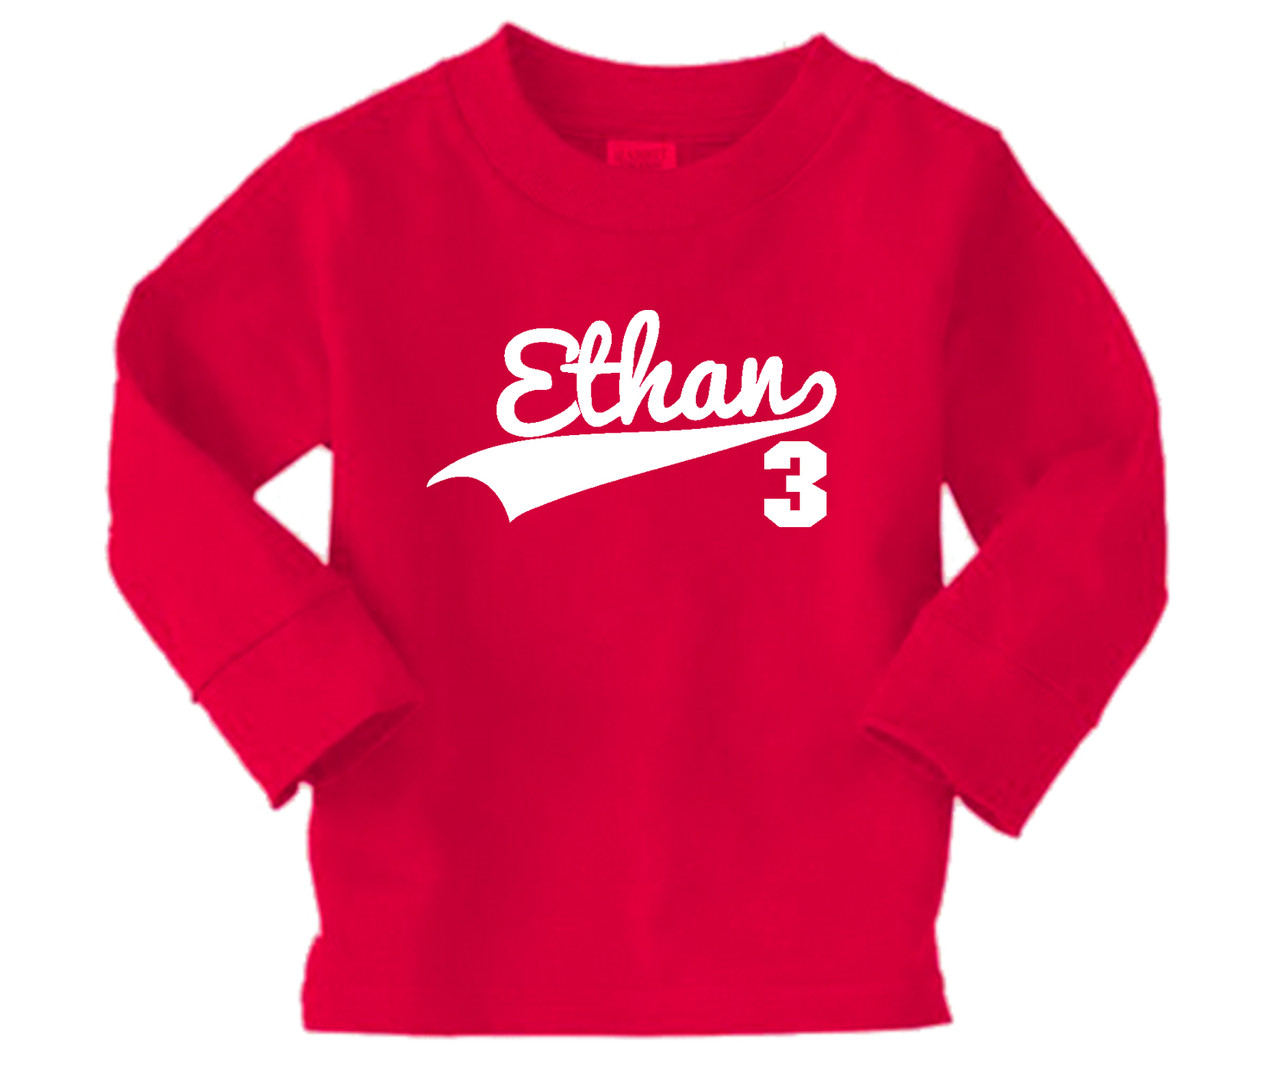 Long Sleeve personalized birthday swoosh tshirt printed on red.